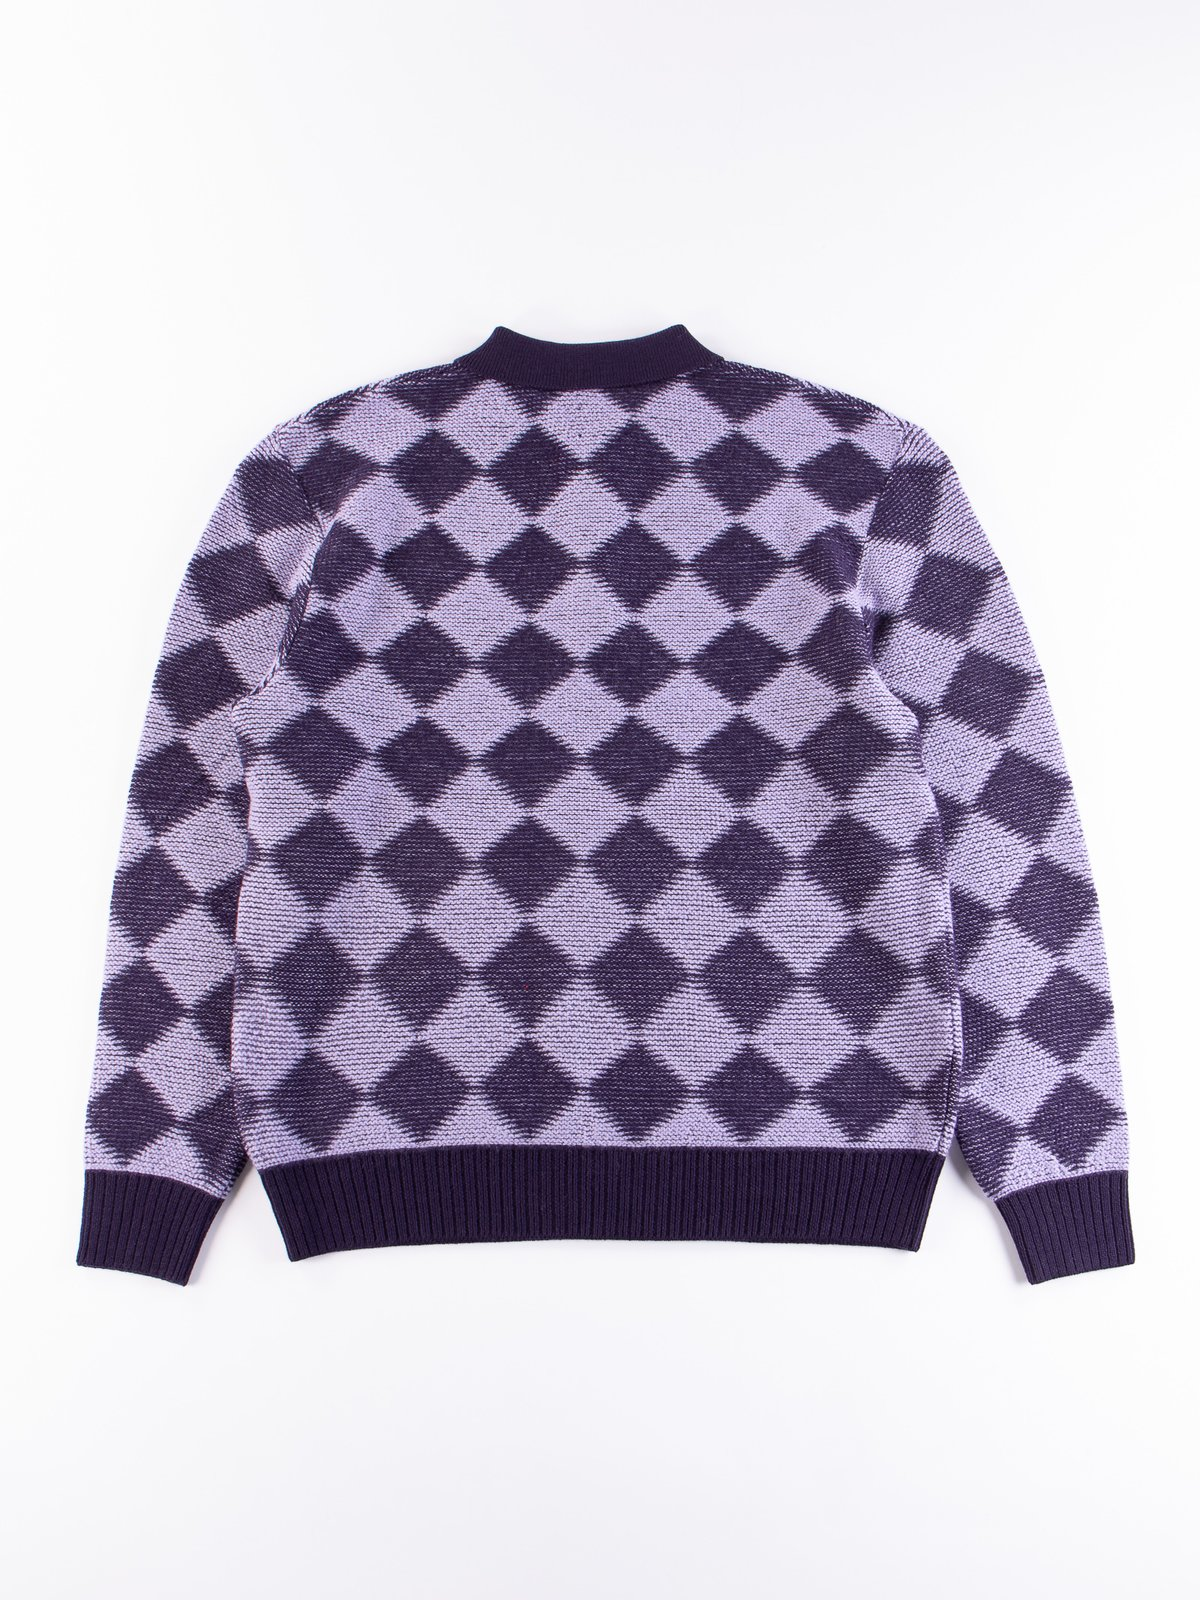 Purple Checkered Polo Sweater - Image 5